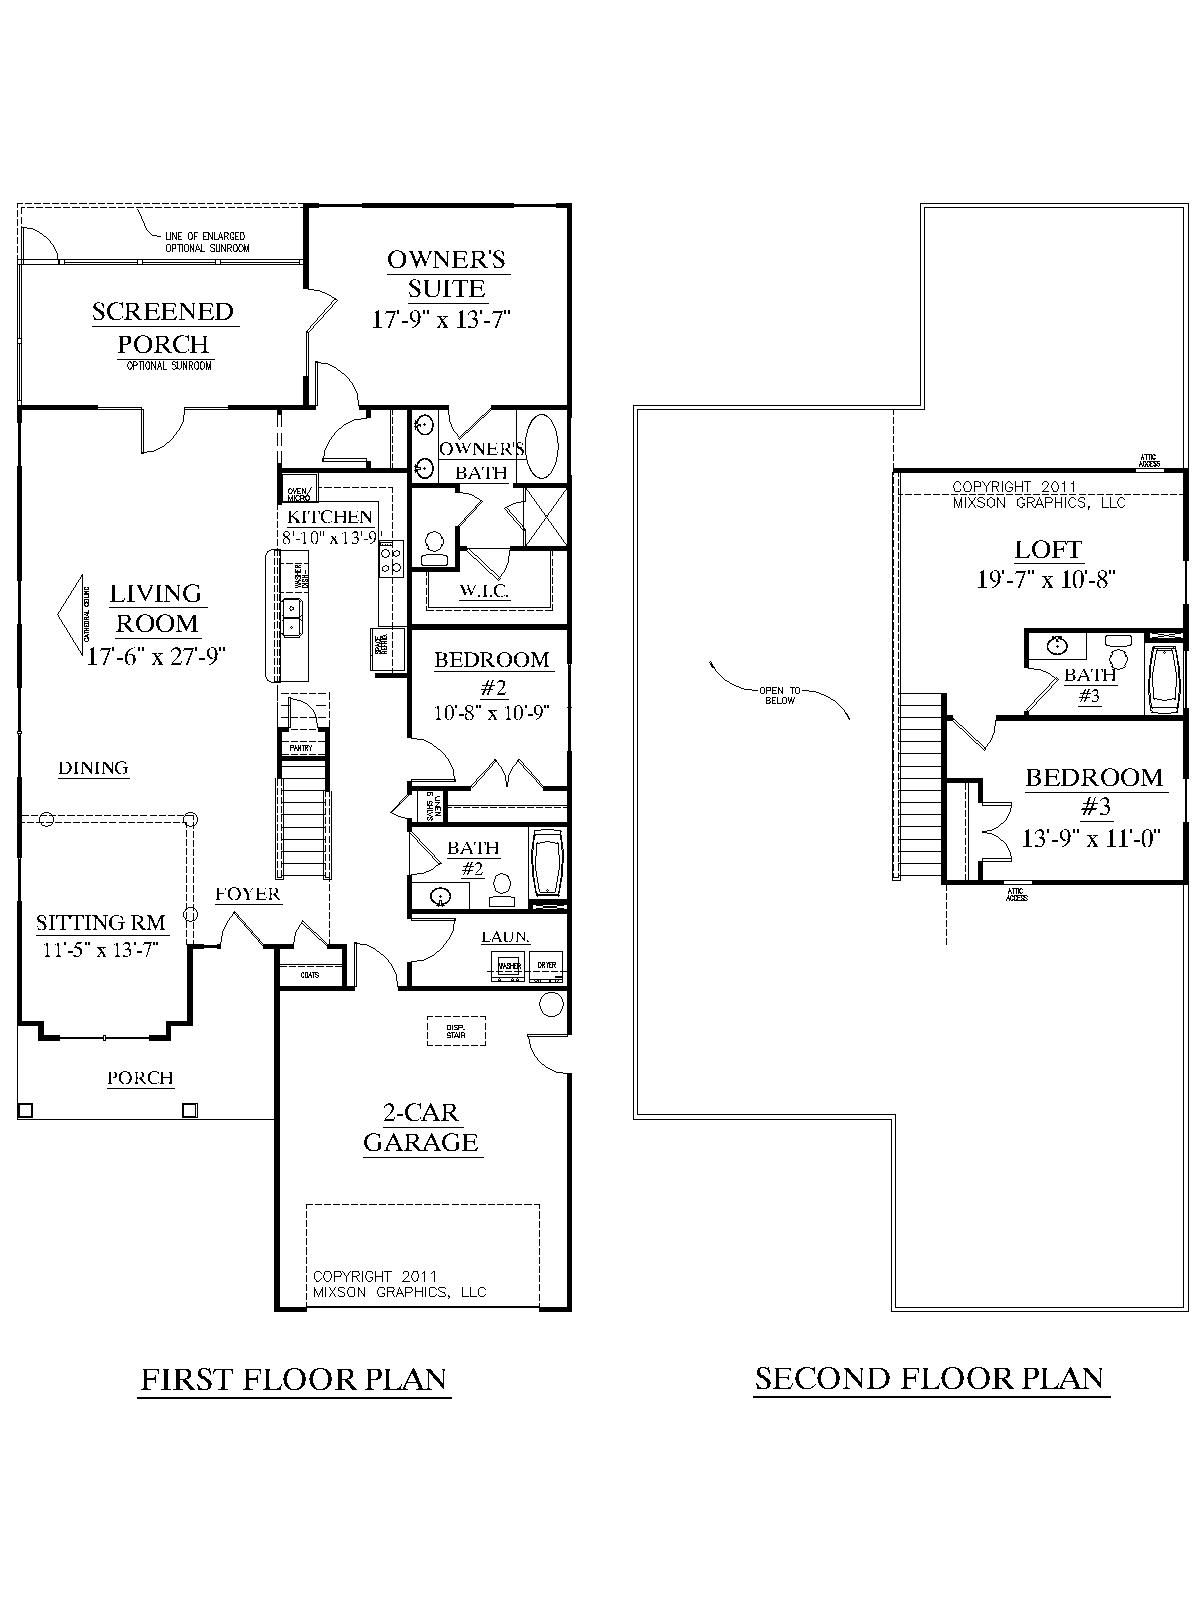 House Plan 2344 Arcadia Floor Plan Traditional 1 1 2 Story House Plan With 3 Bedrooms And 3 Full Ba House Plan With Loft New House Plans Bluebird House Plans